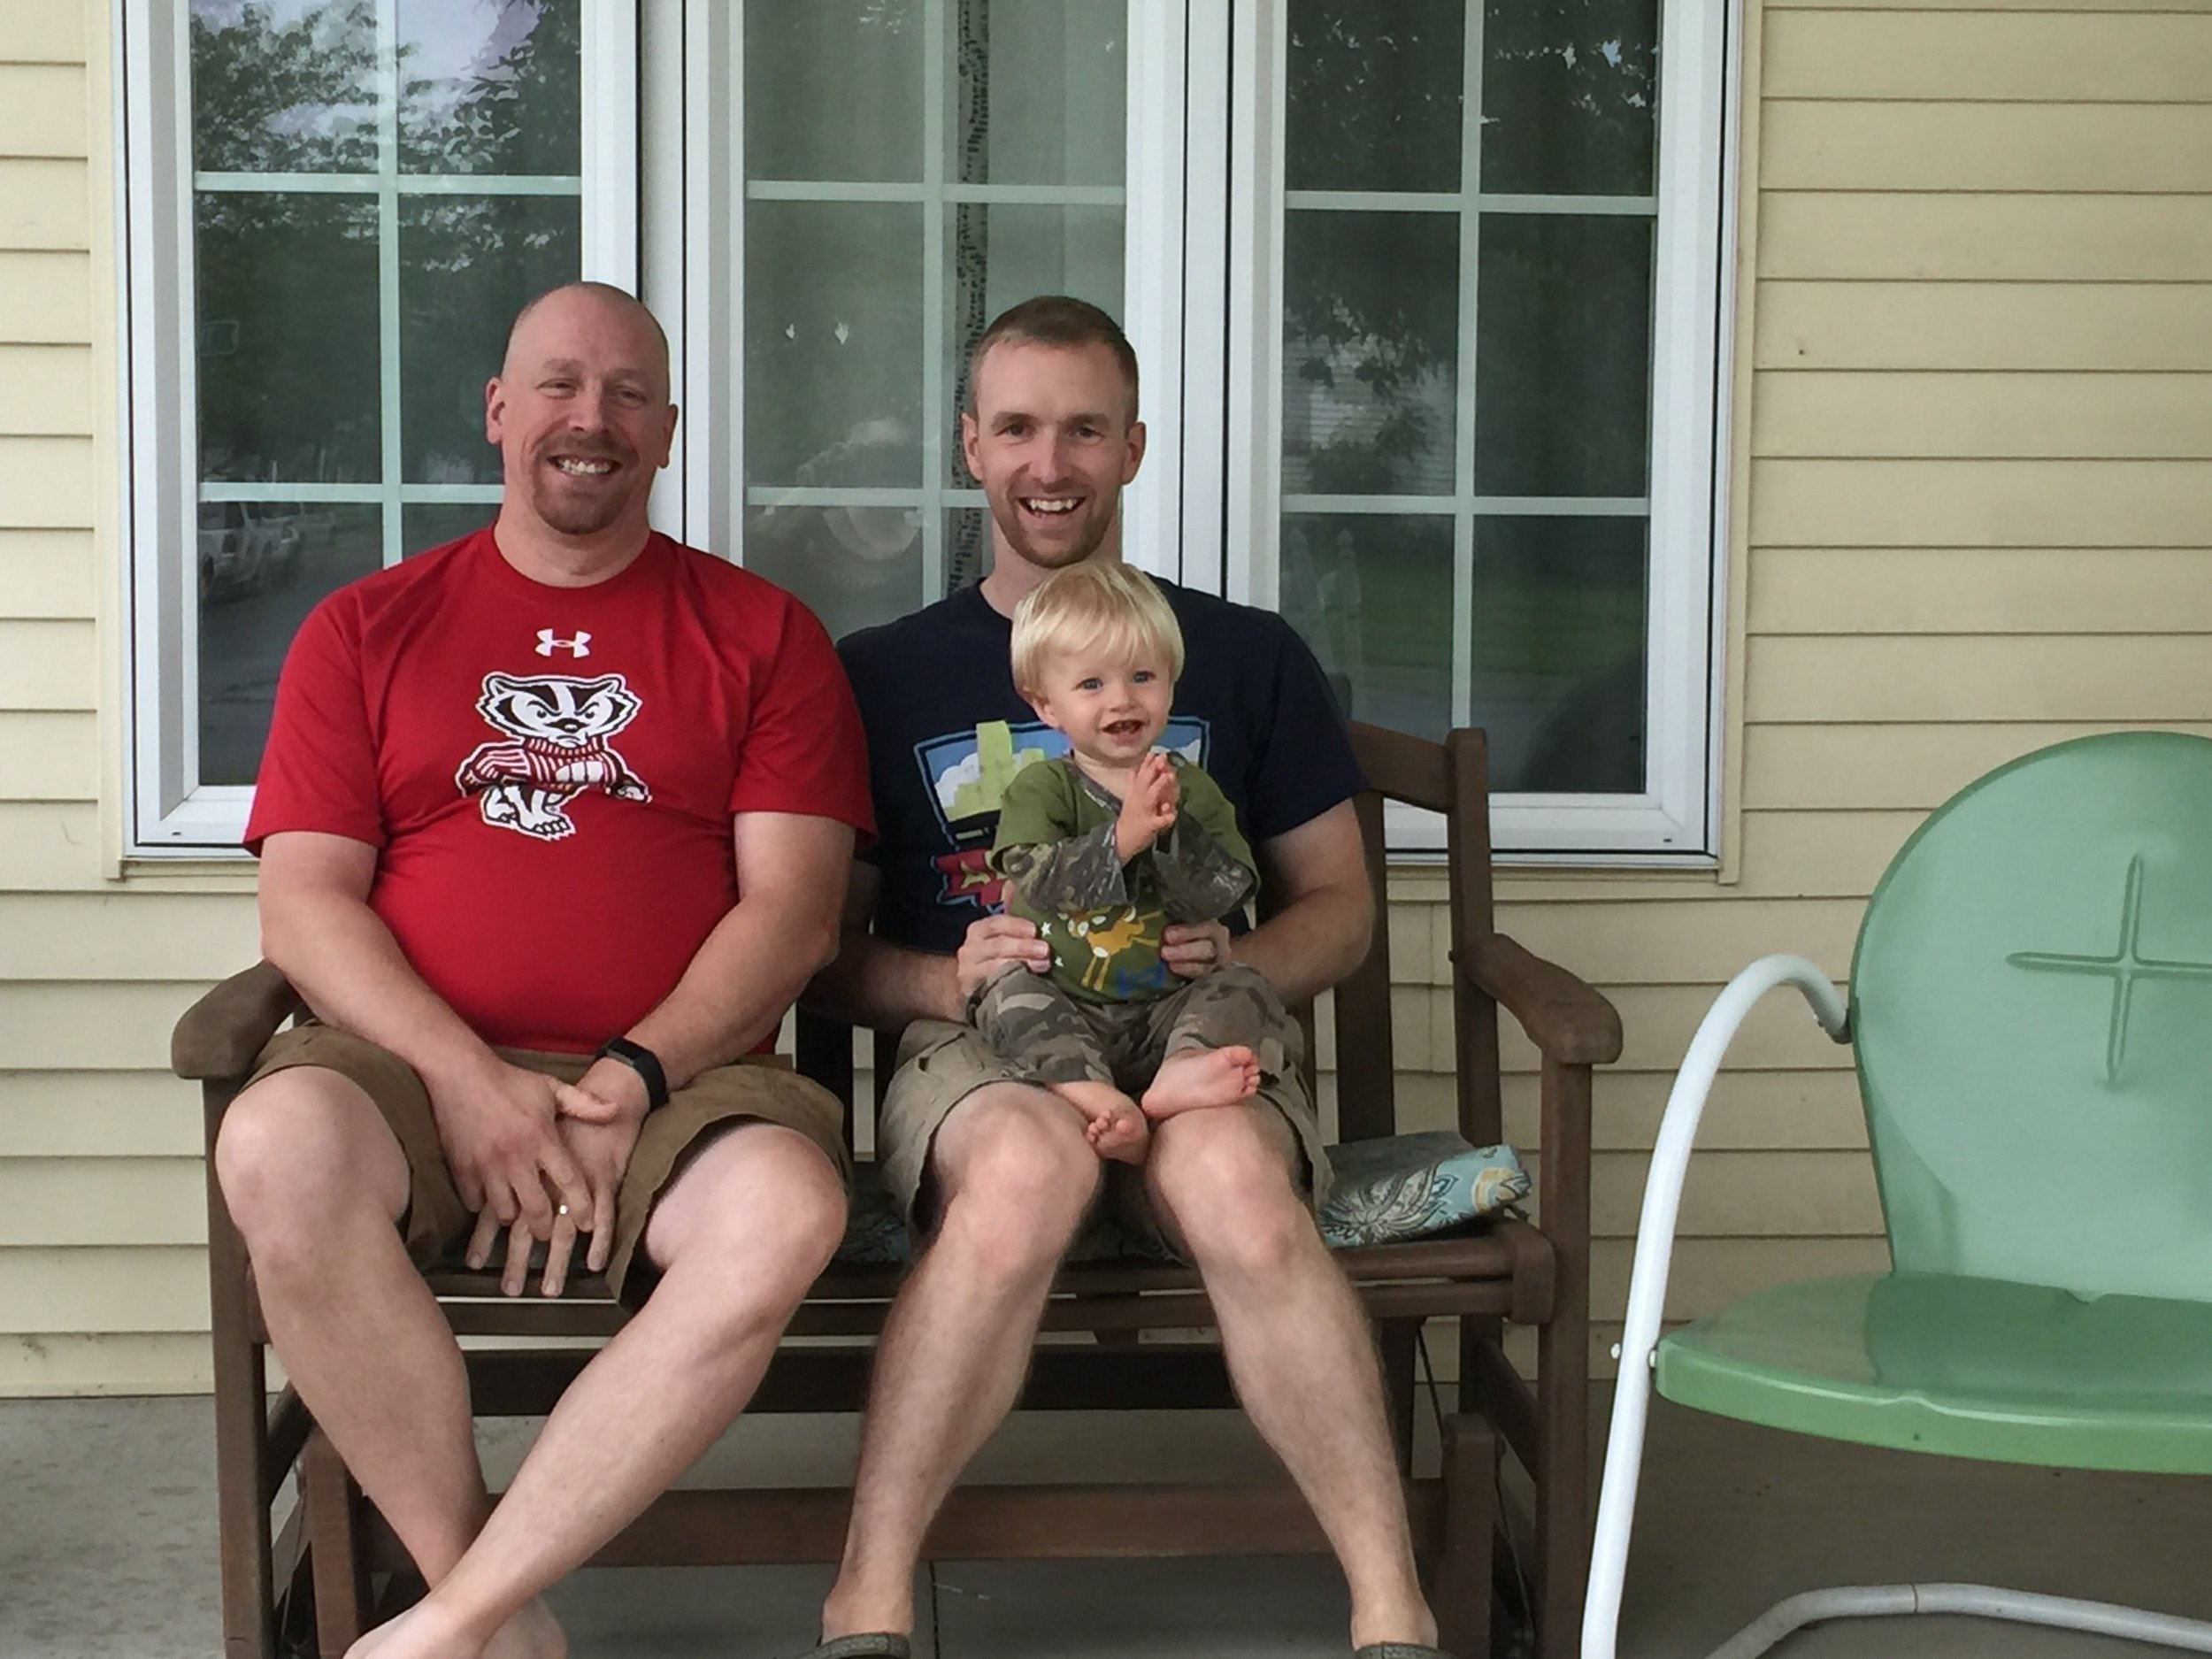 Hanging out on the front porch